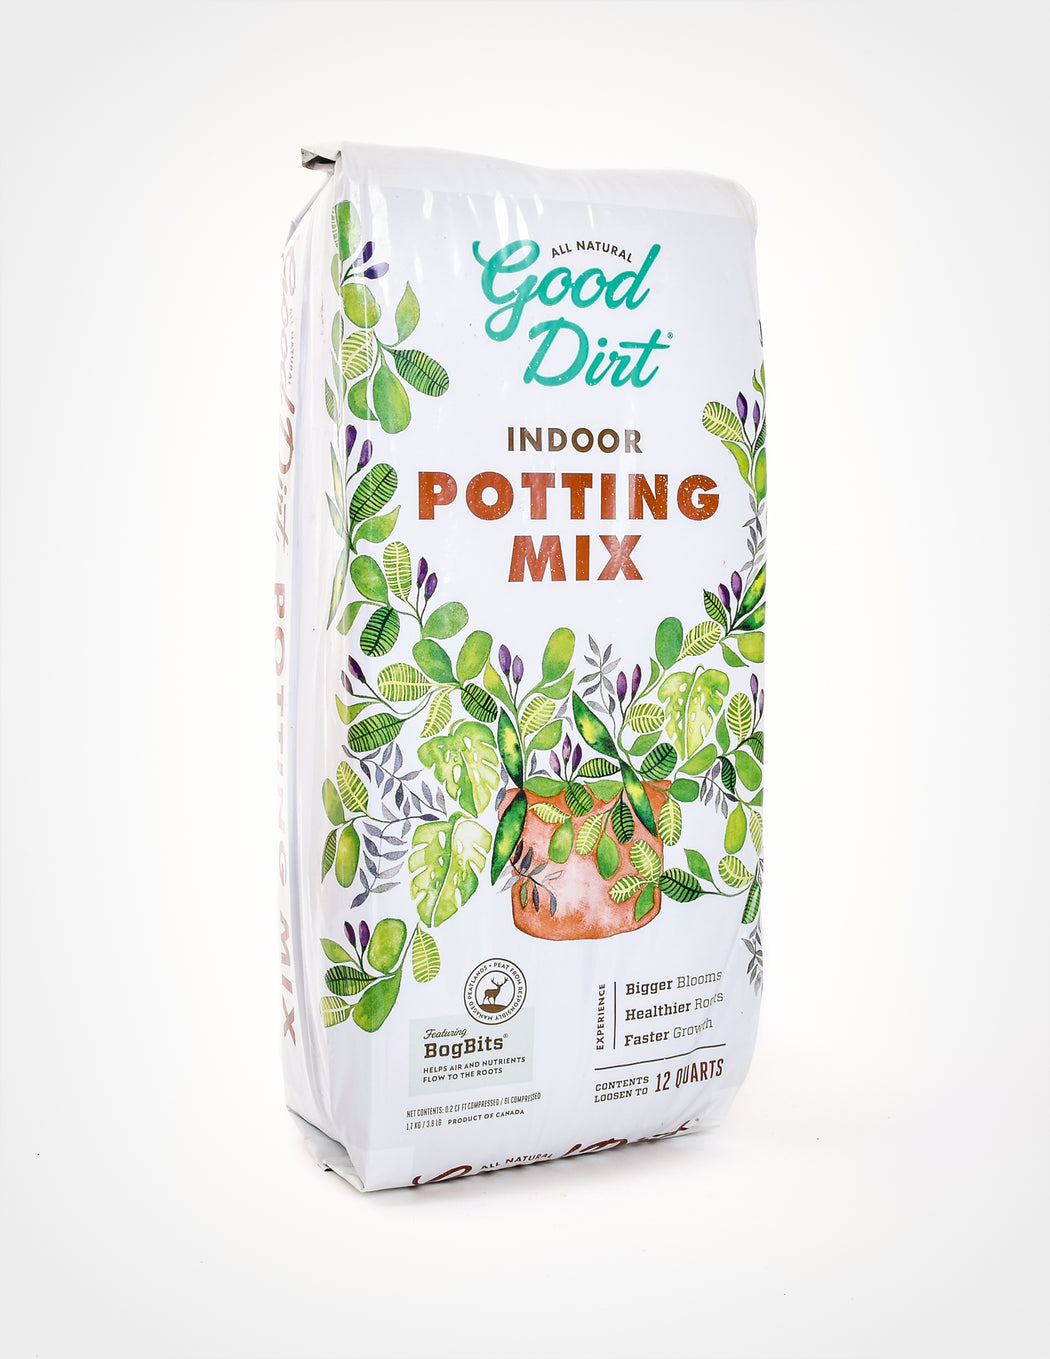 Good Dirt Indoor Potting Mix - Pistils Nursery